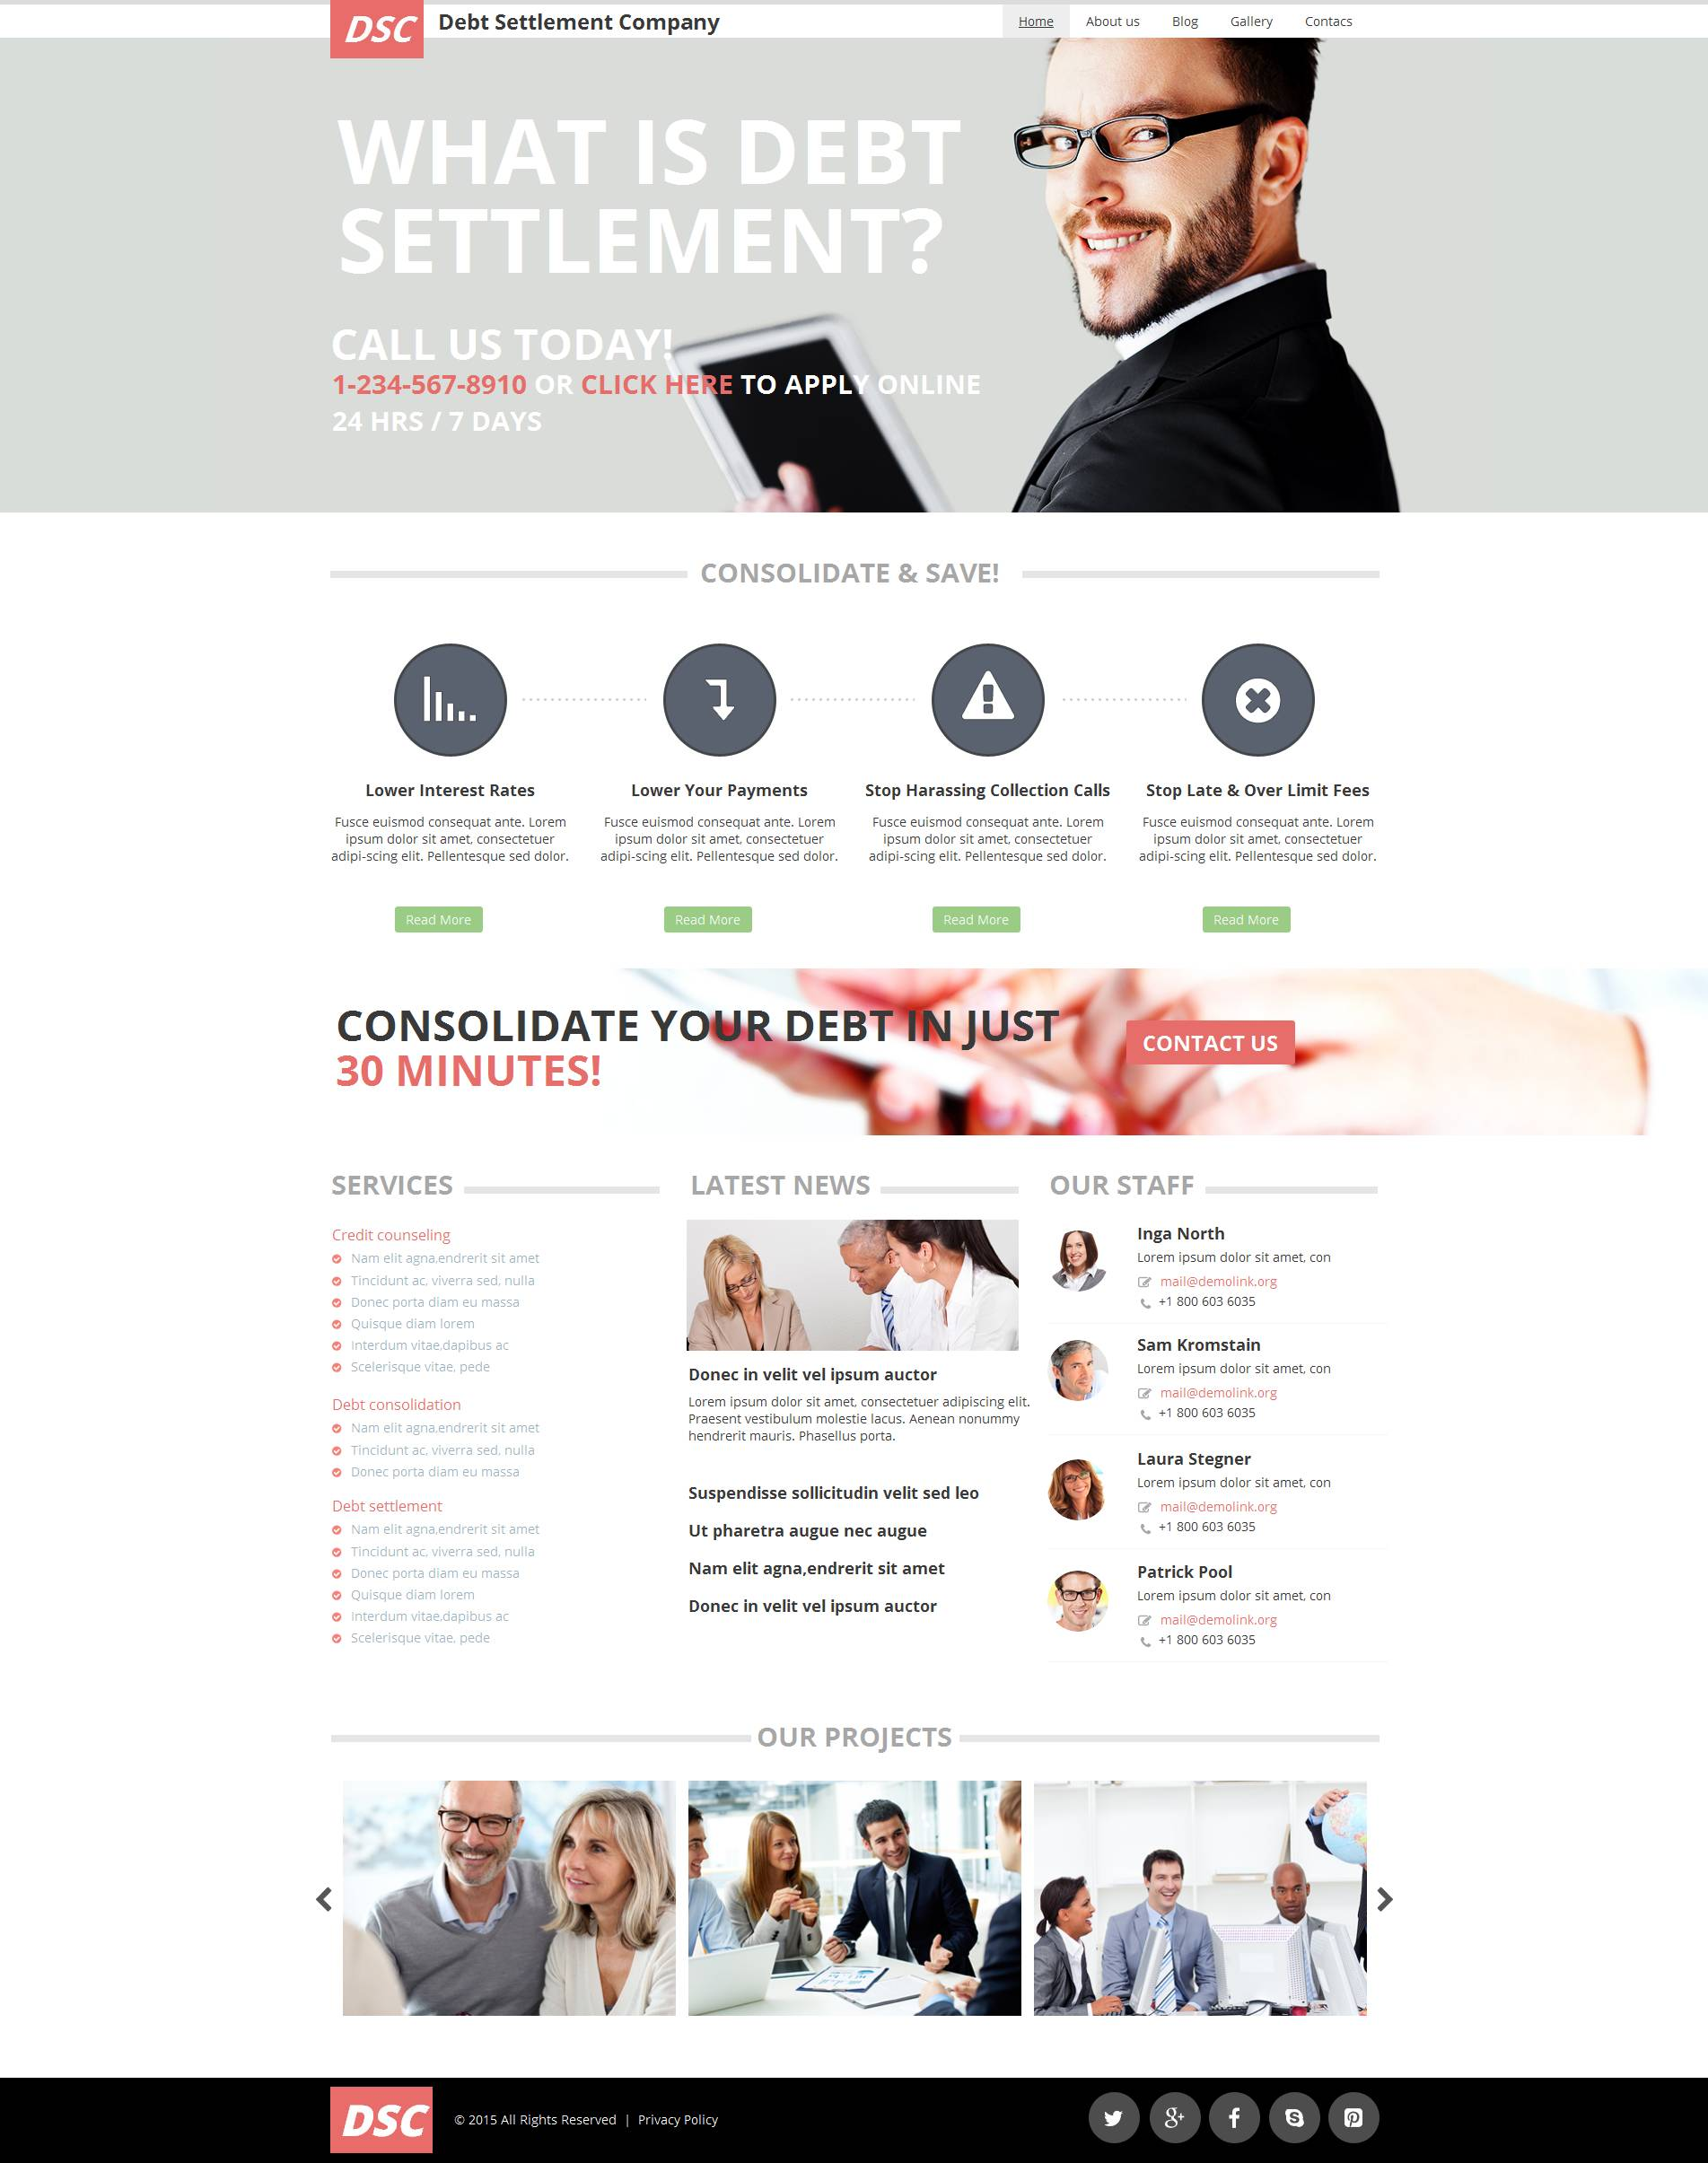 The Dsc Debt Settlement Company Moto CMS HTML Design 53624, one of the best Moto CMS HTML templates of its kind (business), also known as dsc Debt Settlement company Moto CMS HTML template, business Moto CMS HTML template, success company Moto CMS HTML template, enterprise solution Moto CMS HTML template, business Moto CMS HTML template, industry Moto CMS HTML template, technical Moto CMS HTML template, clients Moto CMS HTML template, customer support Moto CMS HTML template, automate Moto CMS HTML template, flow Moto CMS HTML template, services Moto CMS HTML template, plug-in Moto CMS HTML template, flex Moto CMS HTML template, profile Moto CMS HTML template, principles Moto CMS HTML template, web products Moto CMS HTML template, technology system and related with dsc Debt Settlement company, business, success company, enterprise solution, business, industry, technical, clients, customer support, automate, flow, services, plug-in, flex, profile, principles, web products, technology system, etc.